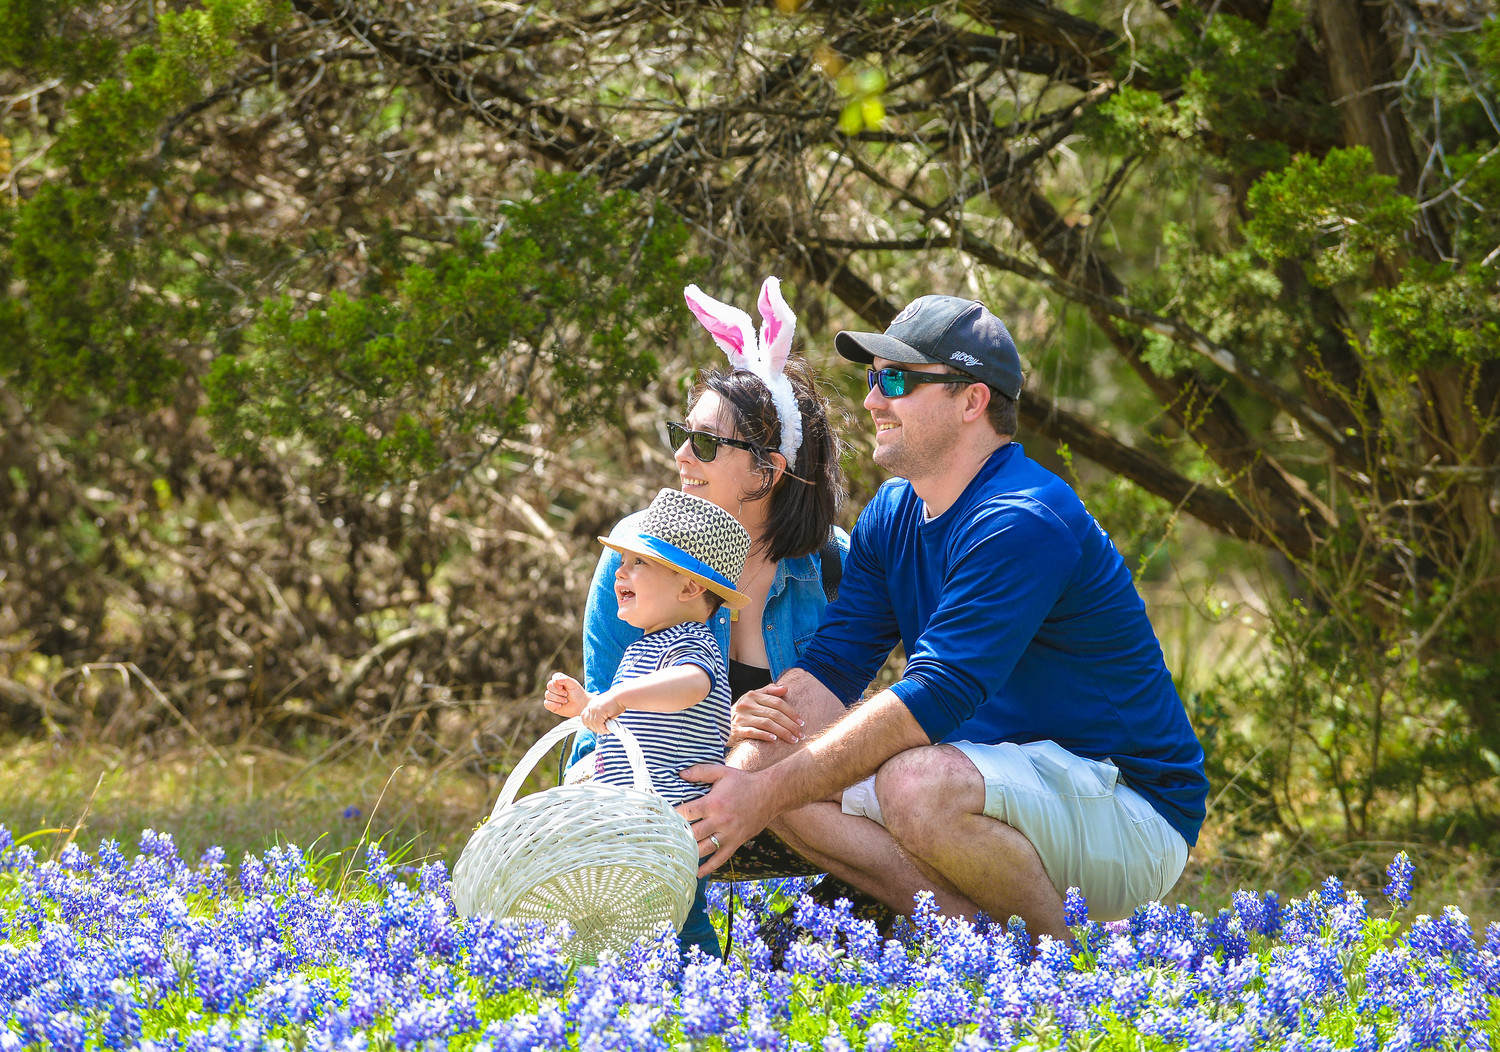 One family enjoyed the serenity in a field of Bluebonnets on the grounds of Rockbridge Church.